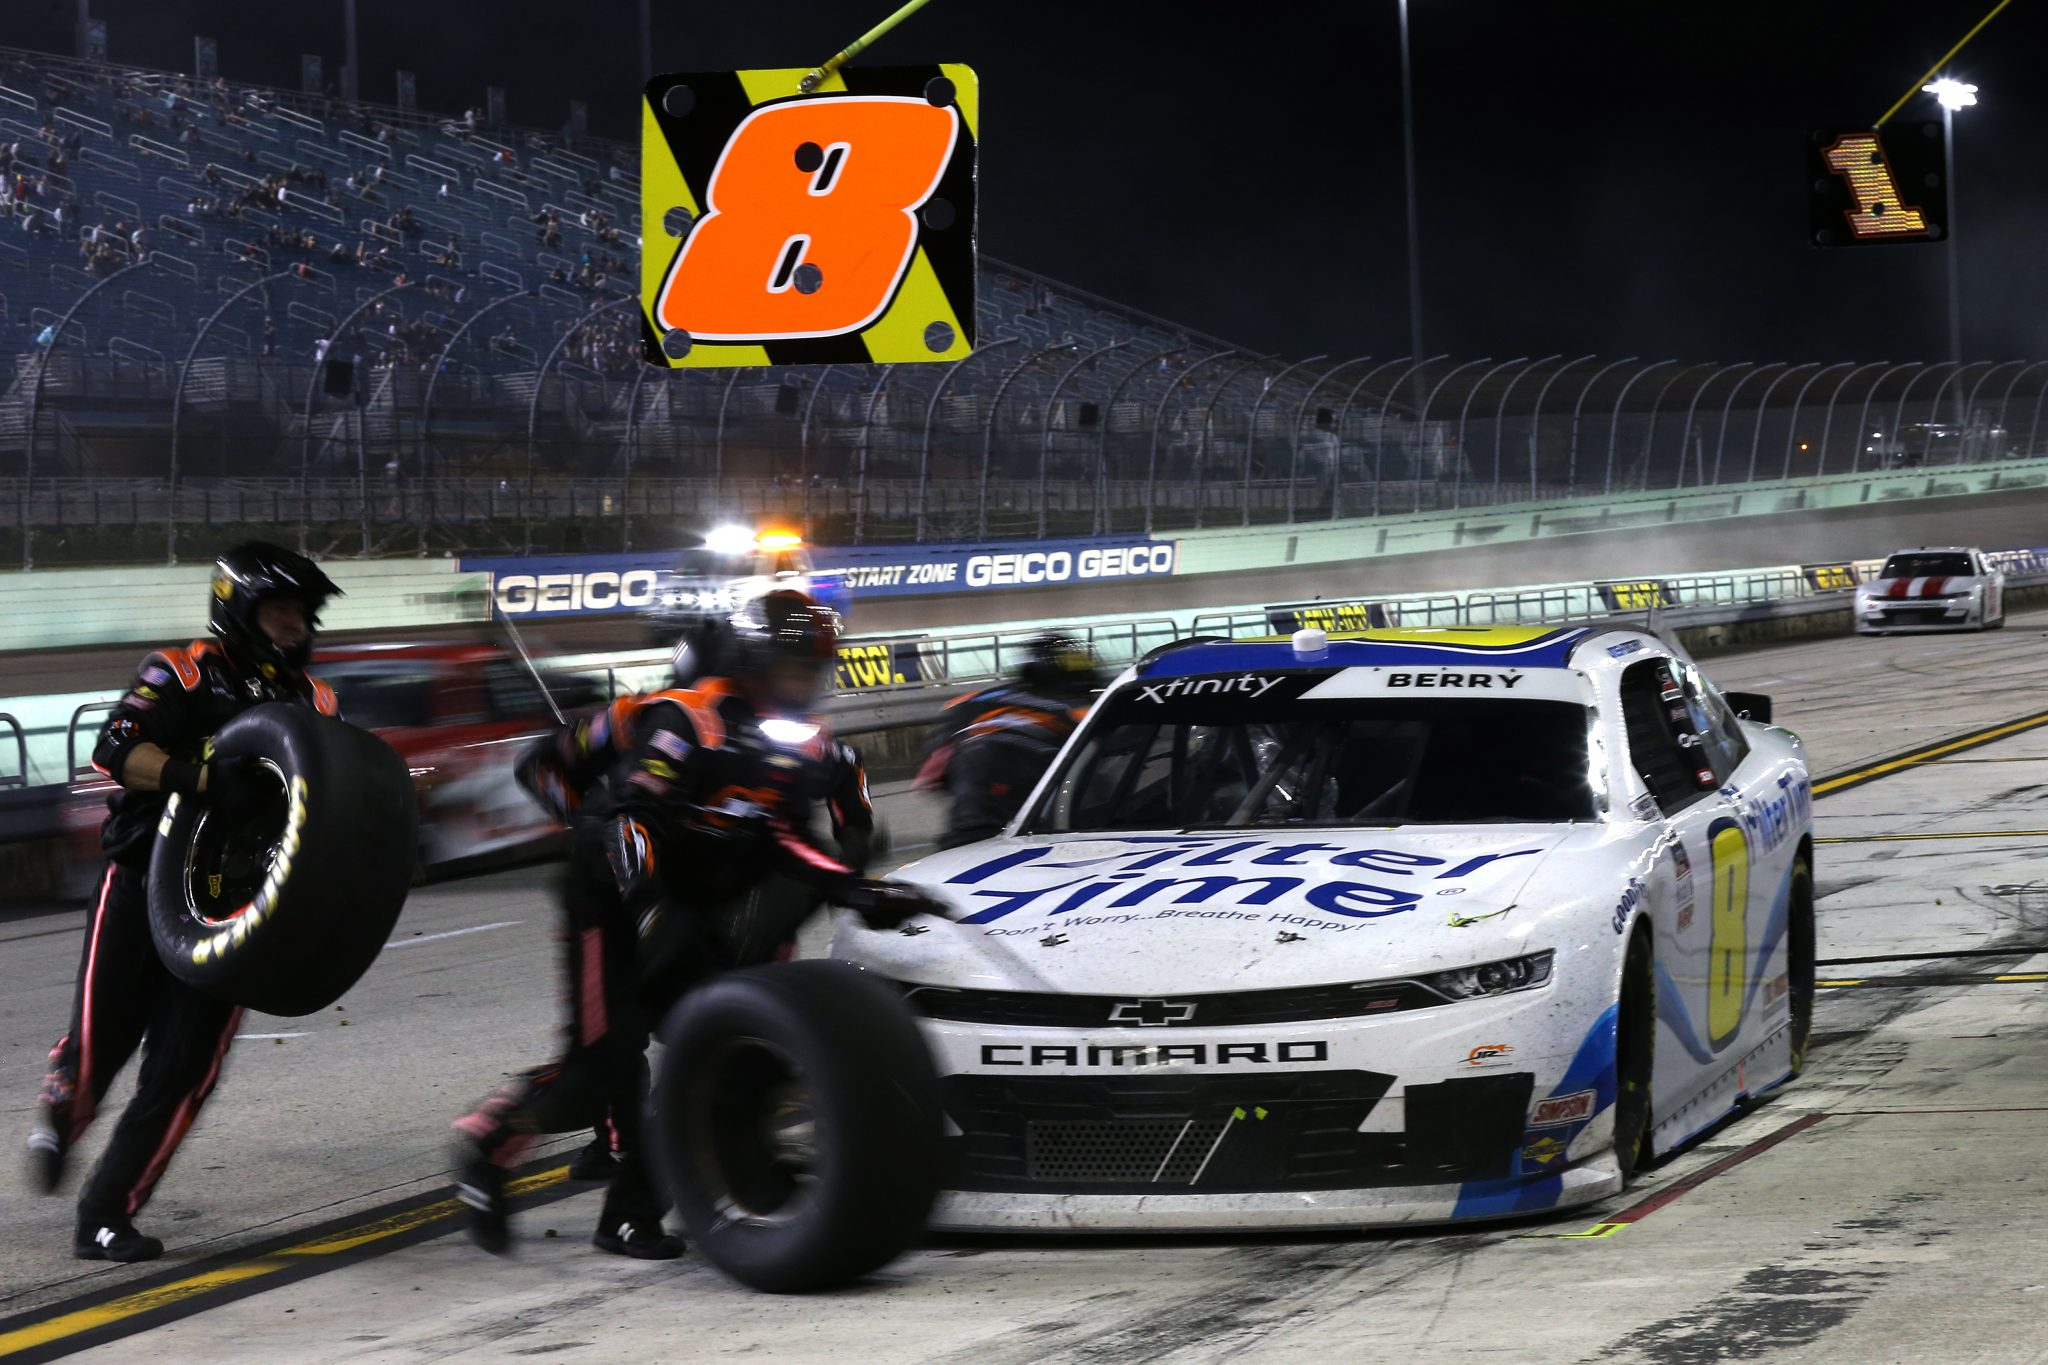 HOMESTEAD, FLORIDA - FEBRUARY 27: Josh Berry, driver of the #8 FilterTime Chevrolet, pits during the NASCAR Xfinity Series Contender Boats 250 at Homestead-Miami Speedway on February 27, 2021 in Homestead, Florida. (Photo by Sean Gardner/Getty Images) | Getty Images